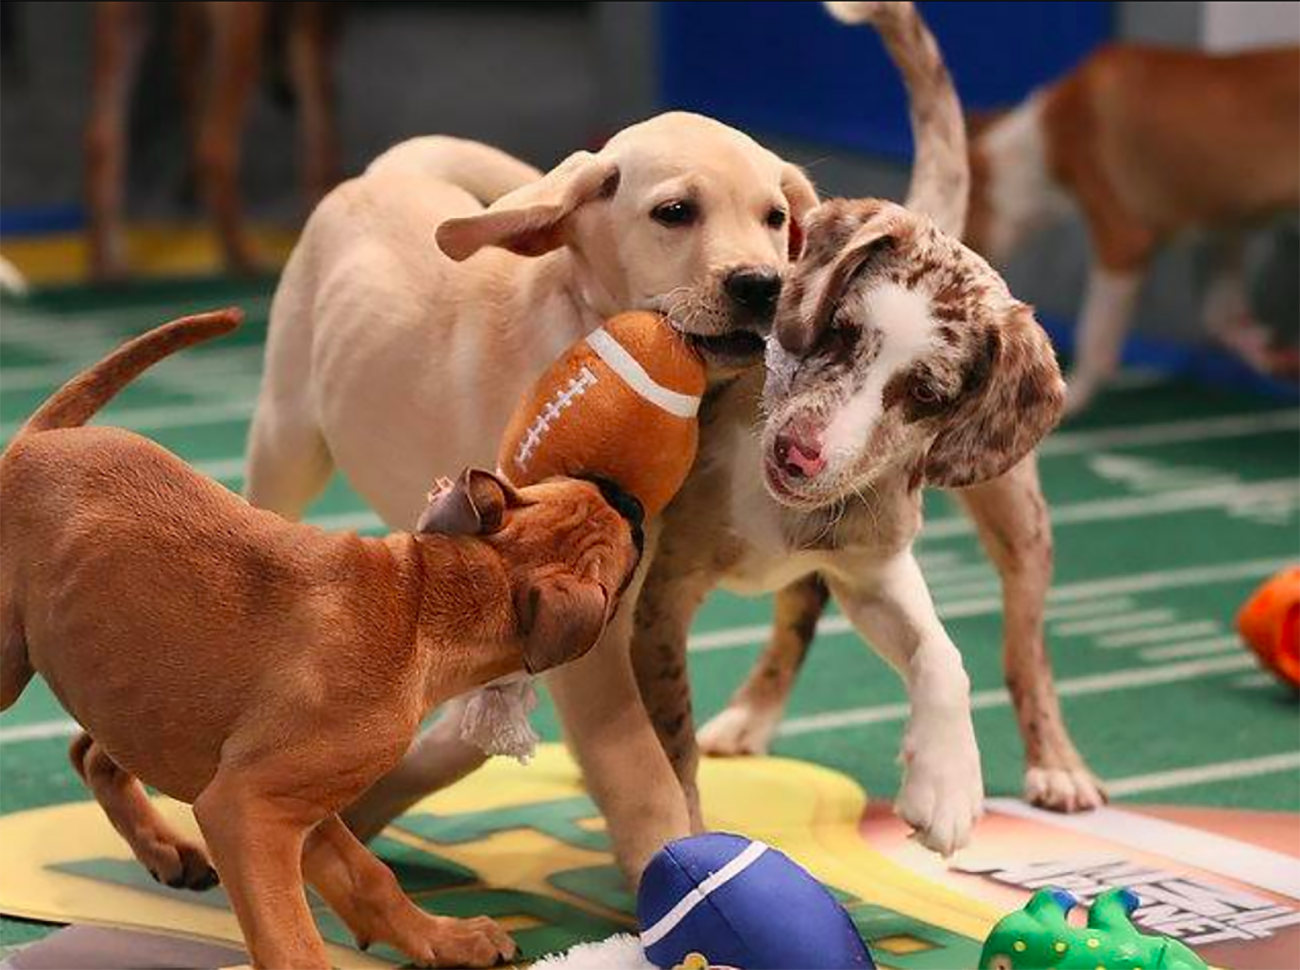 Agenda Weekender: 70+ things to do this weekend, including The Queen City Brewers Festival, multiple puppy bowls and 20 Super Bowl LII watch parties